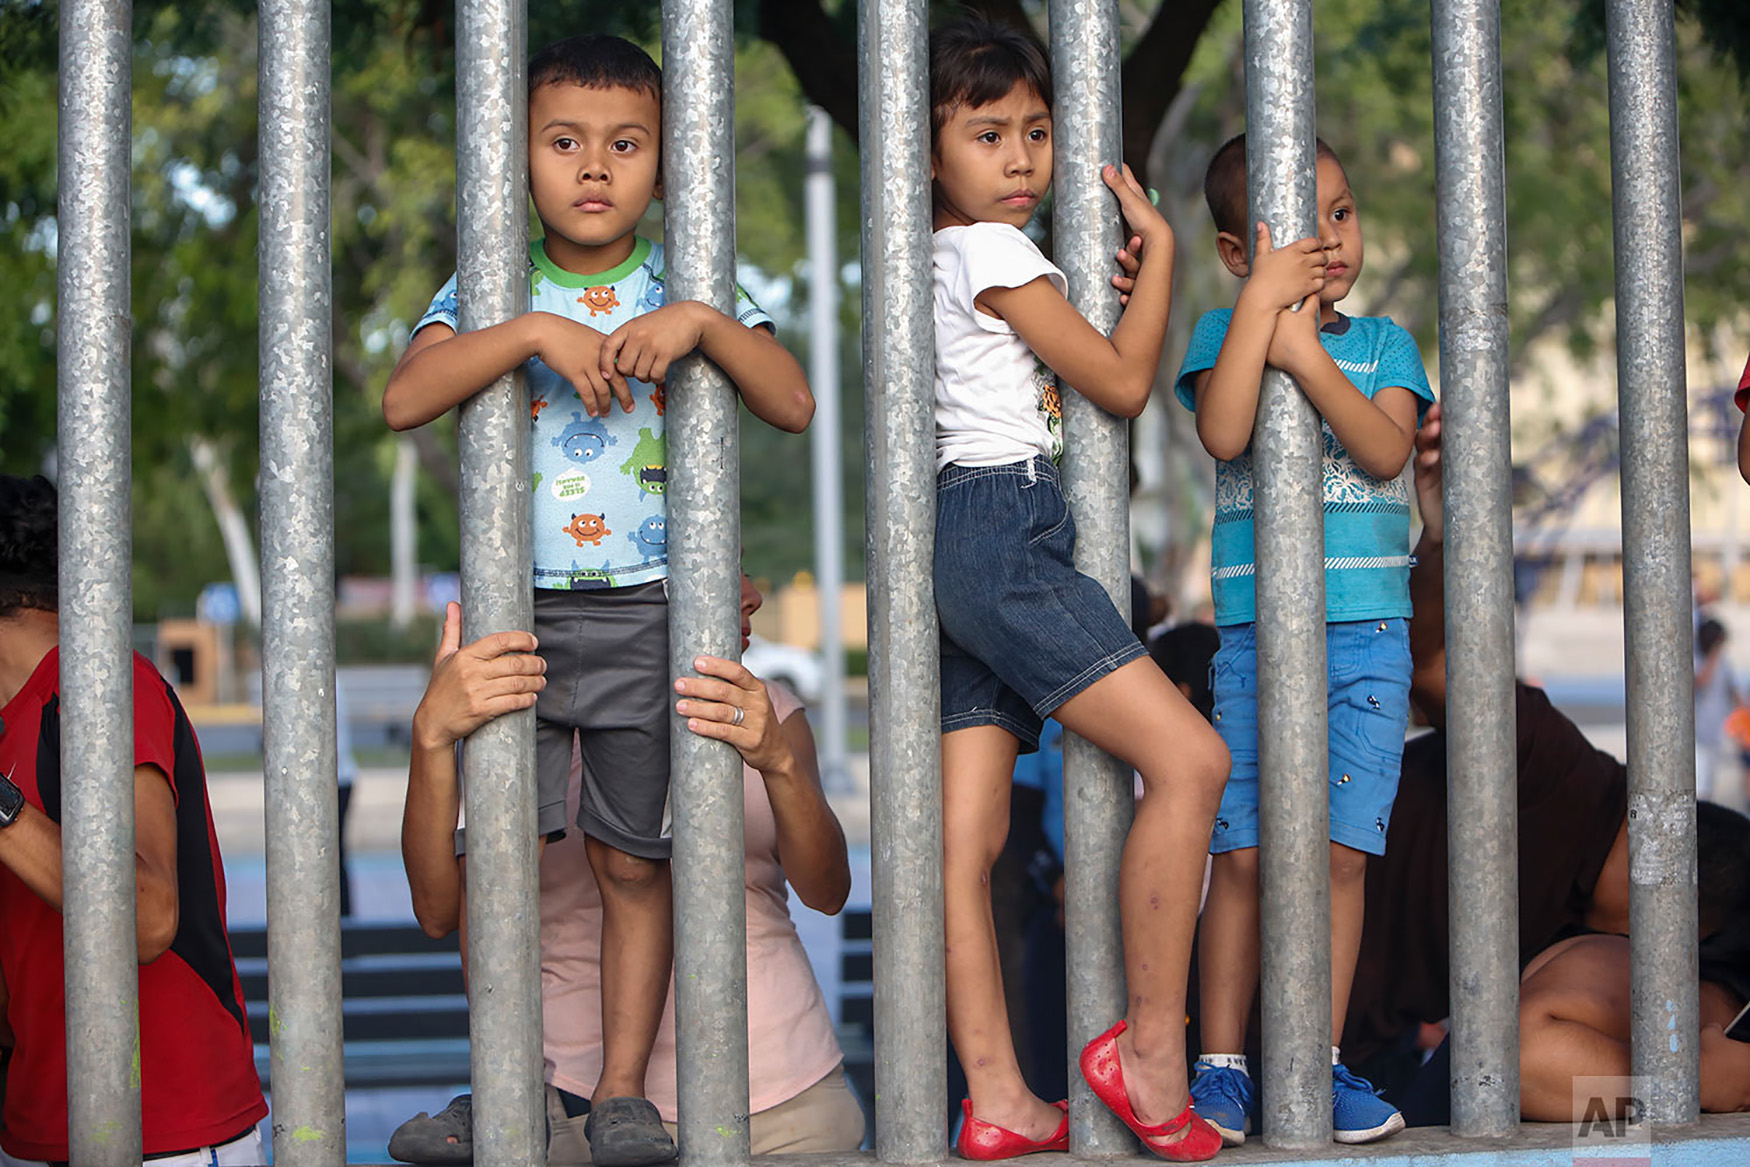 Children watch the Independence Day celebrations in Managua, Nicaragua, Sept. 15, 2018. Nicaragua is marking their 1821 independence from Spain. (AP Photo/Alfredo Zuniga)